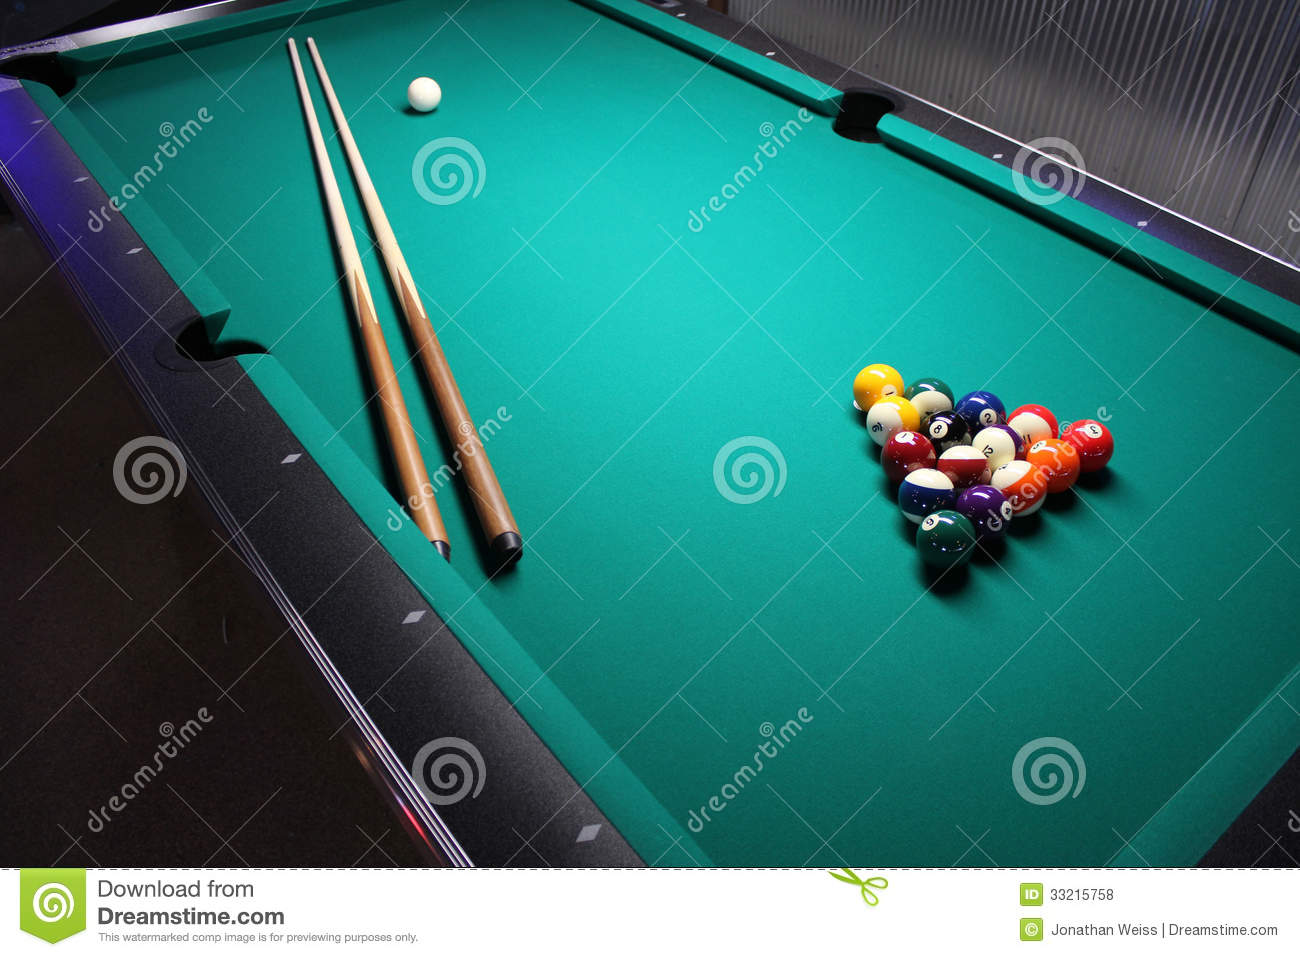 Pool Table Setup >> A Pool Table Set Up For A Game Stock Photo Image Of